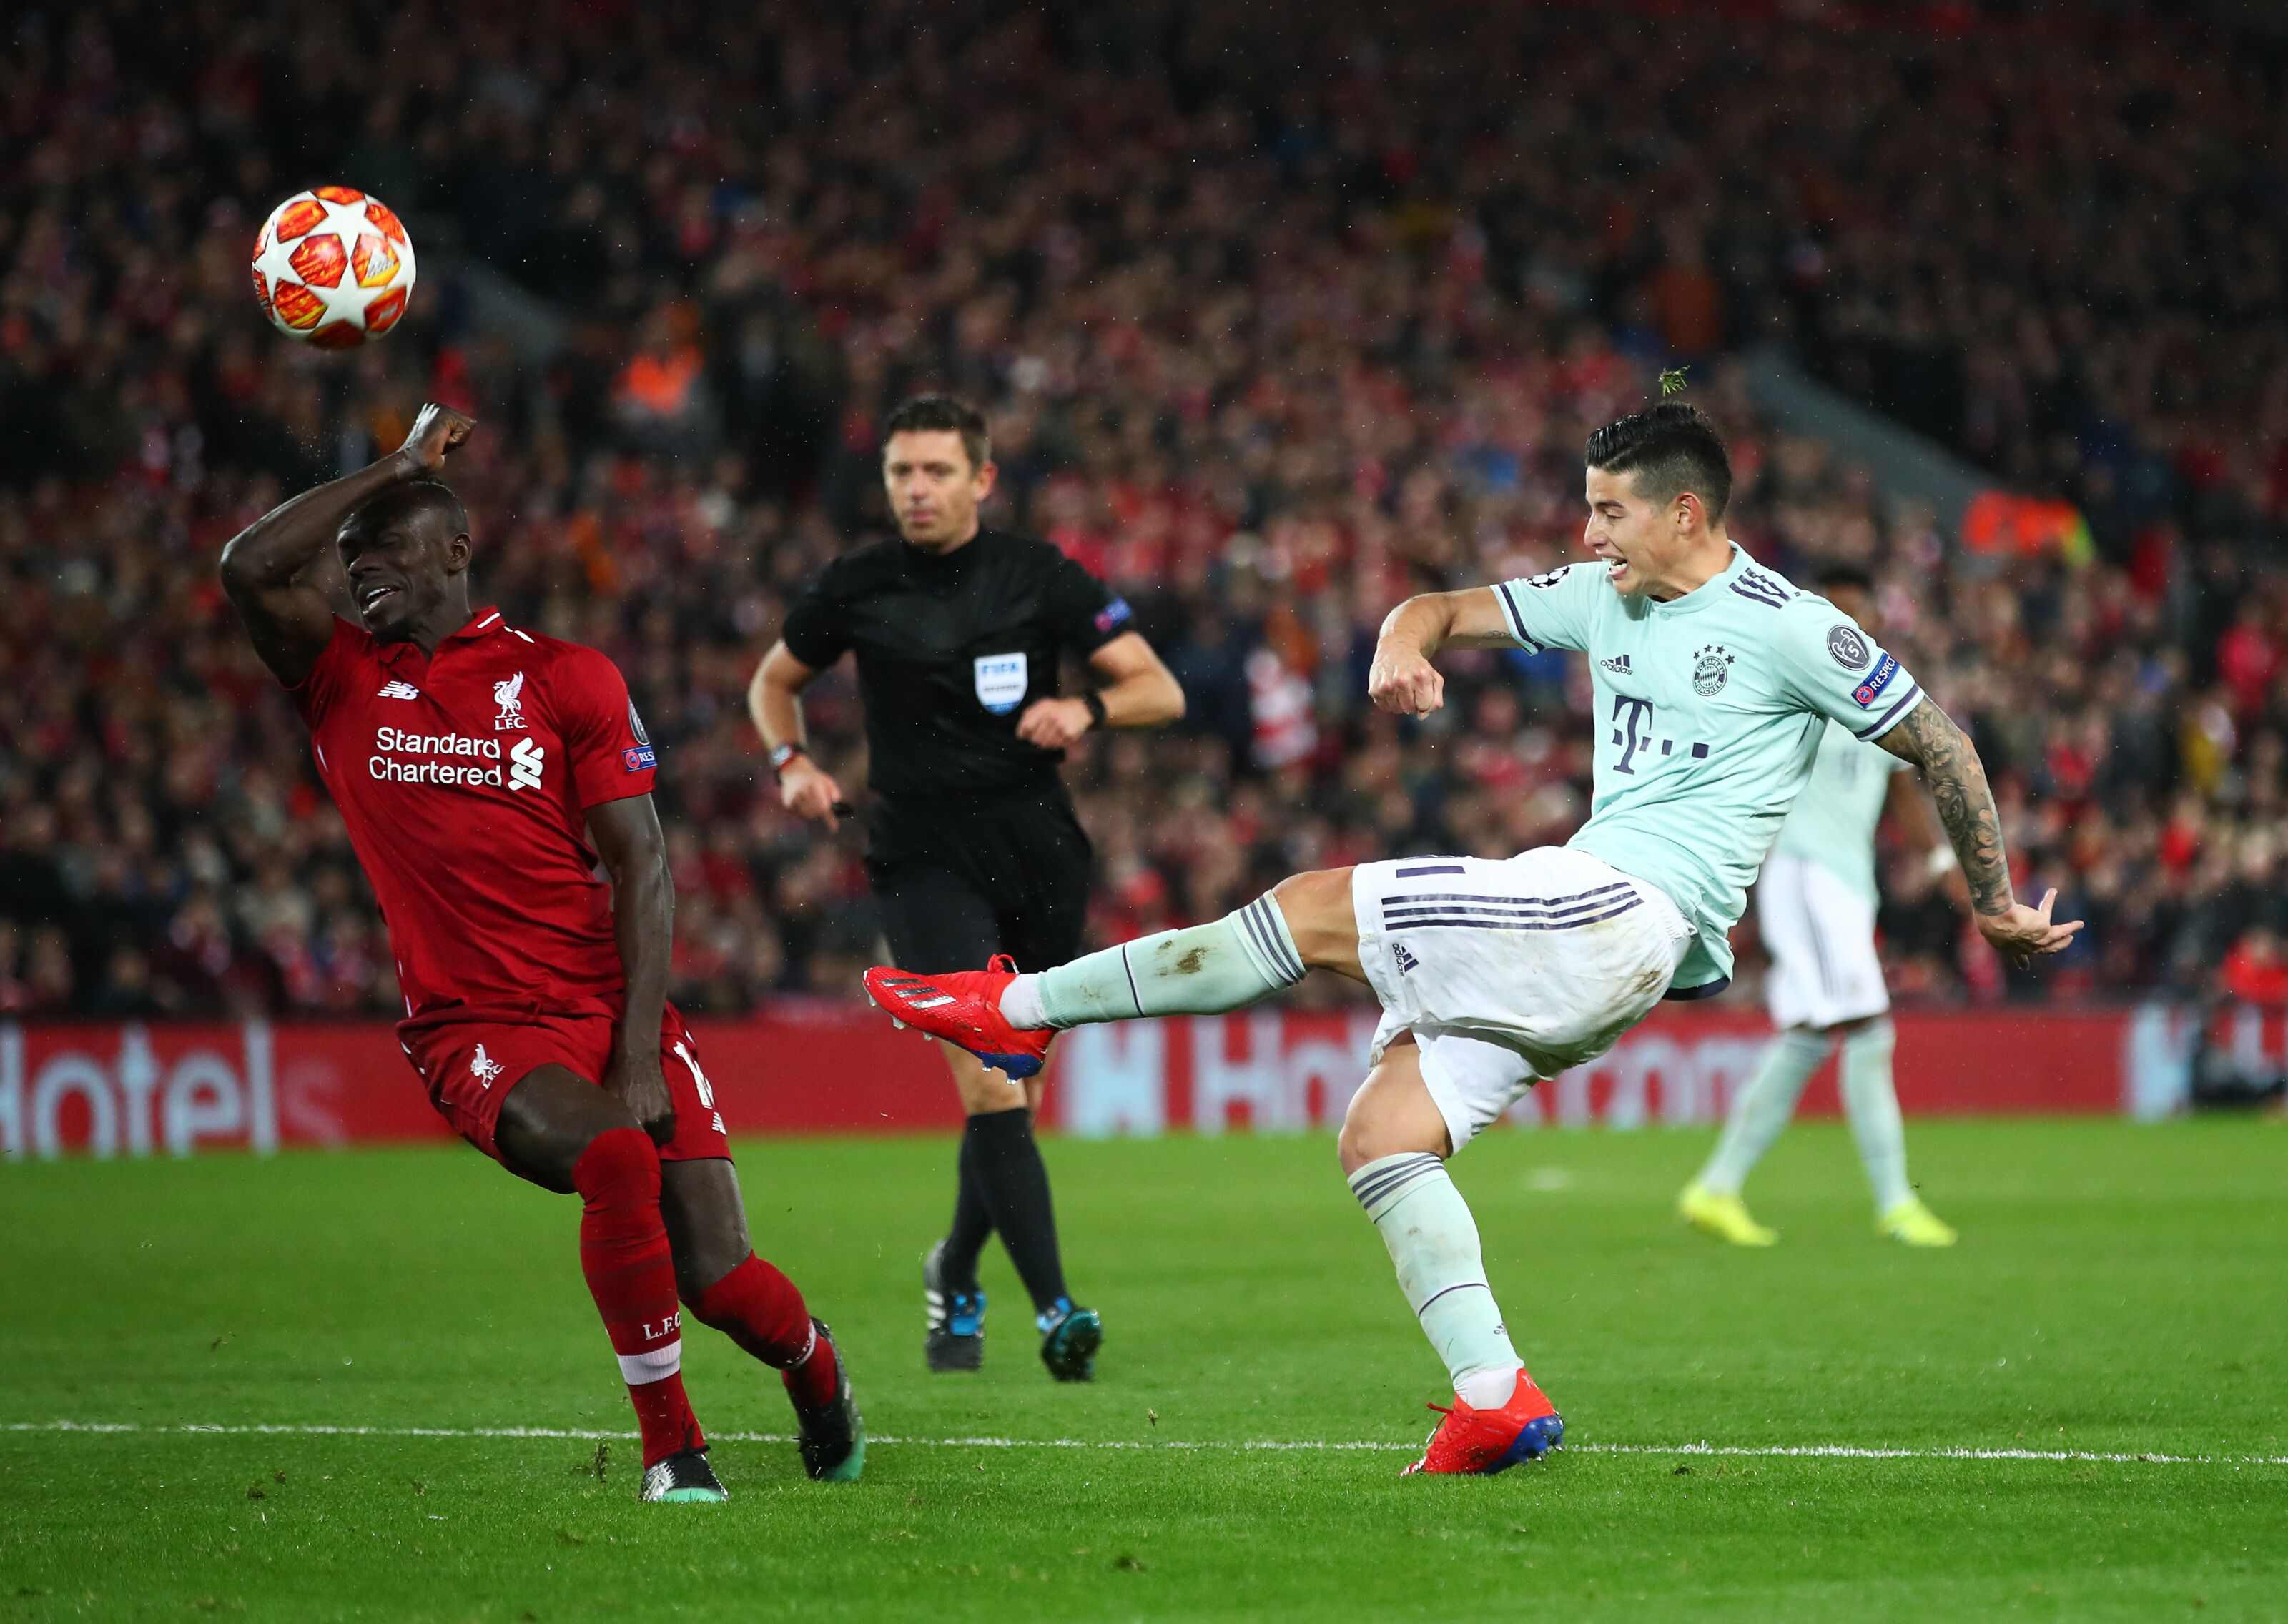 Bayern missed out on Liverpool star and made history